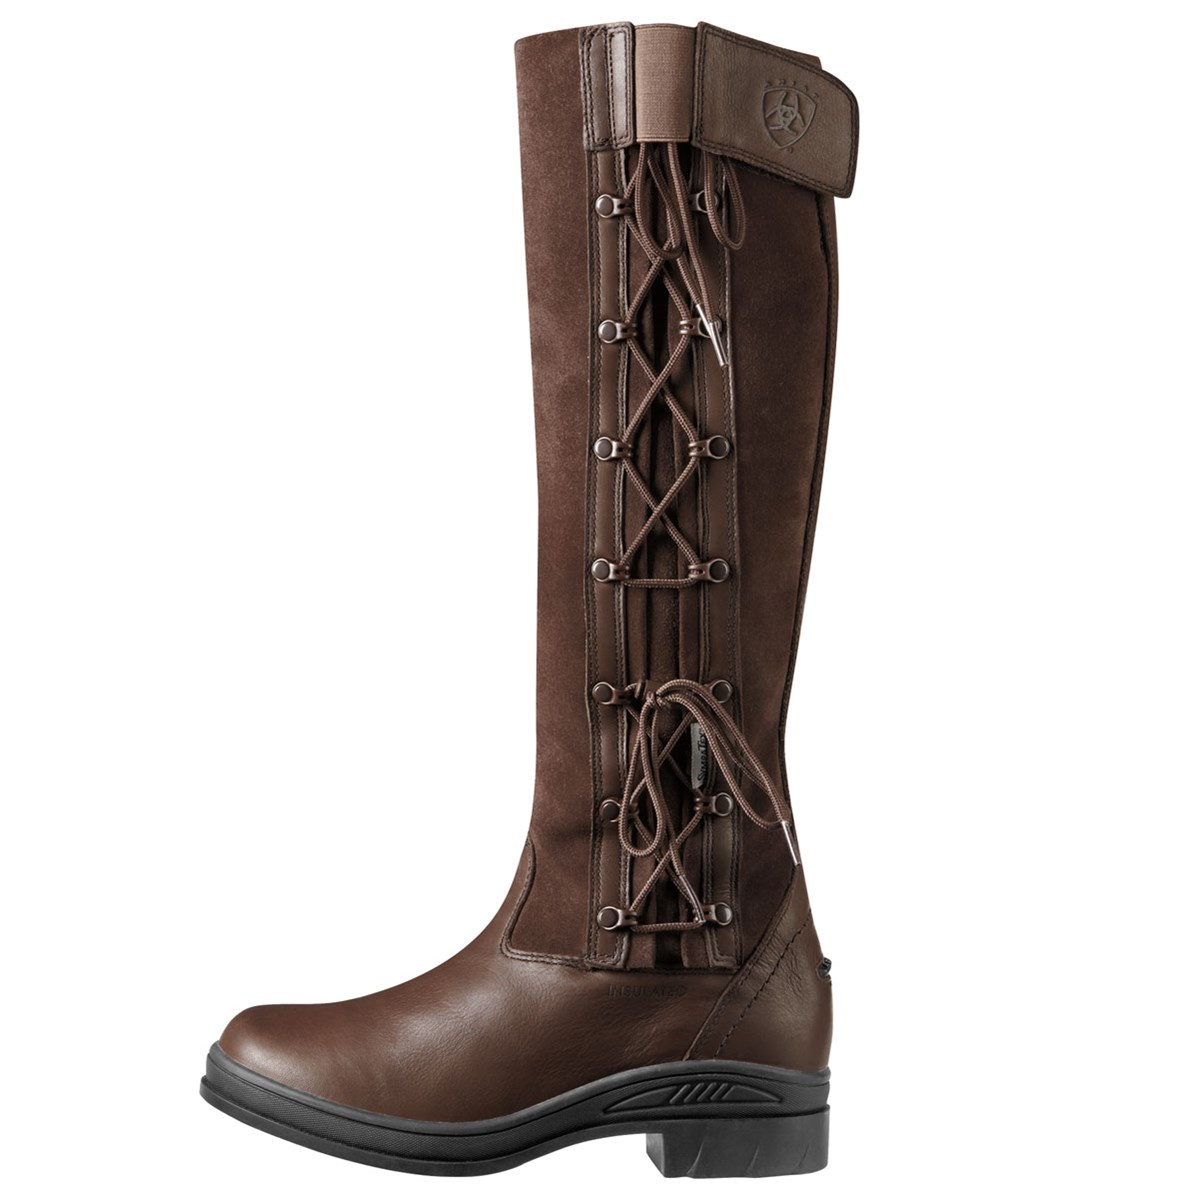 Ariat Grasmere Tall Womens Boot - Chocolate - Redpost Equestrian